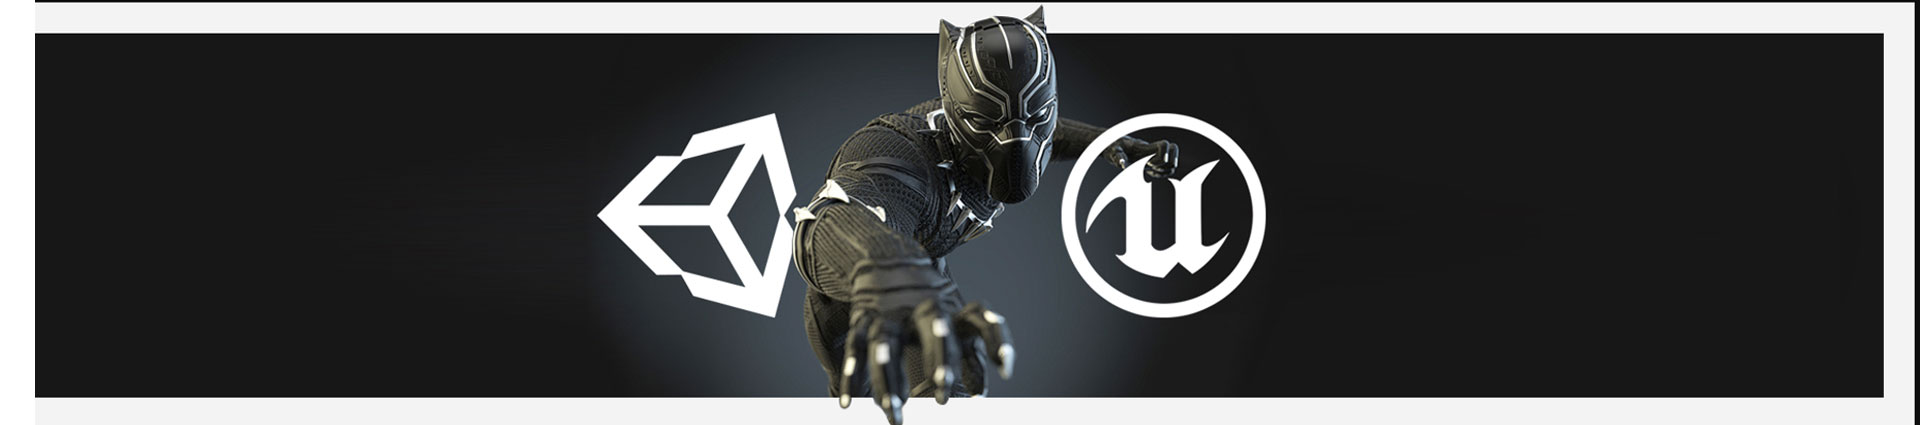 Unreal and Unity3D Game Engine